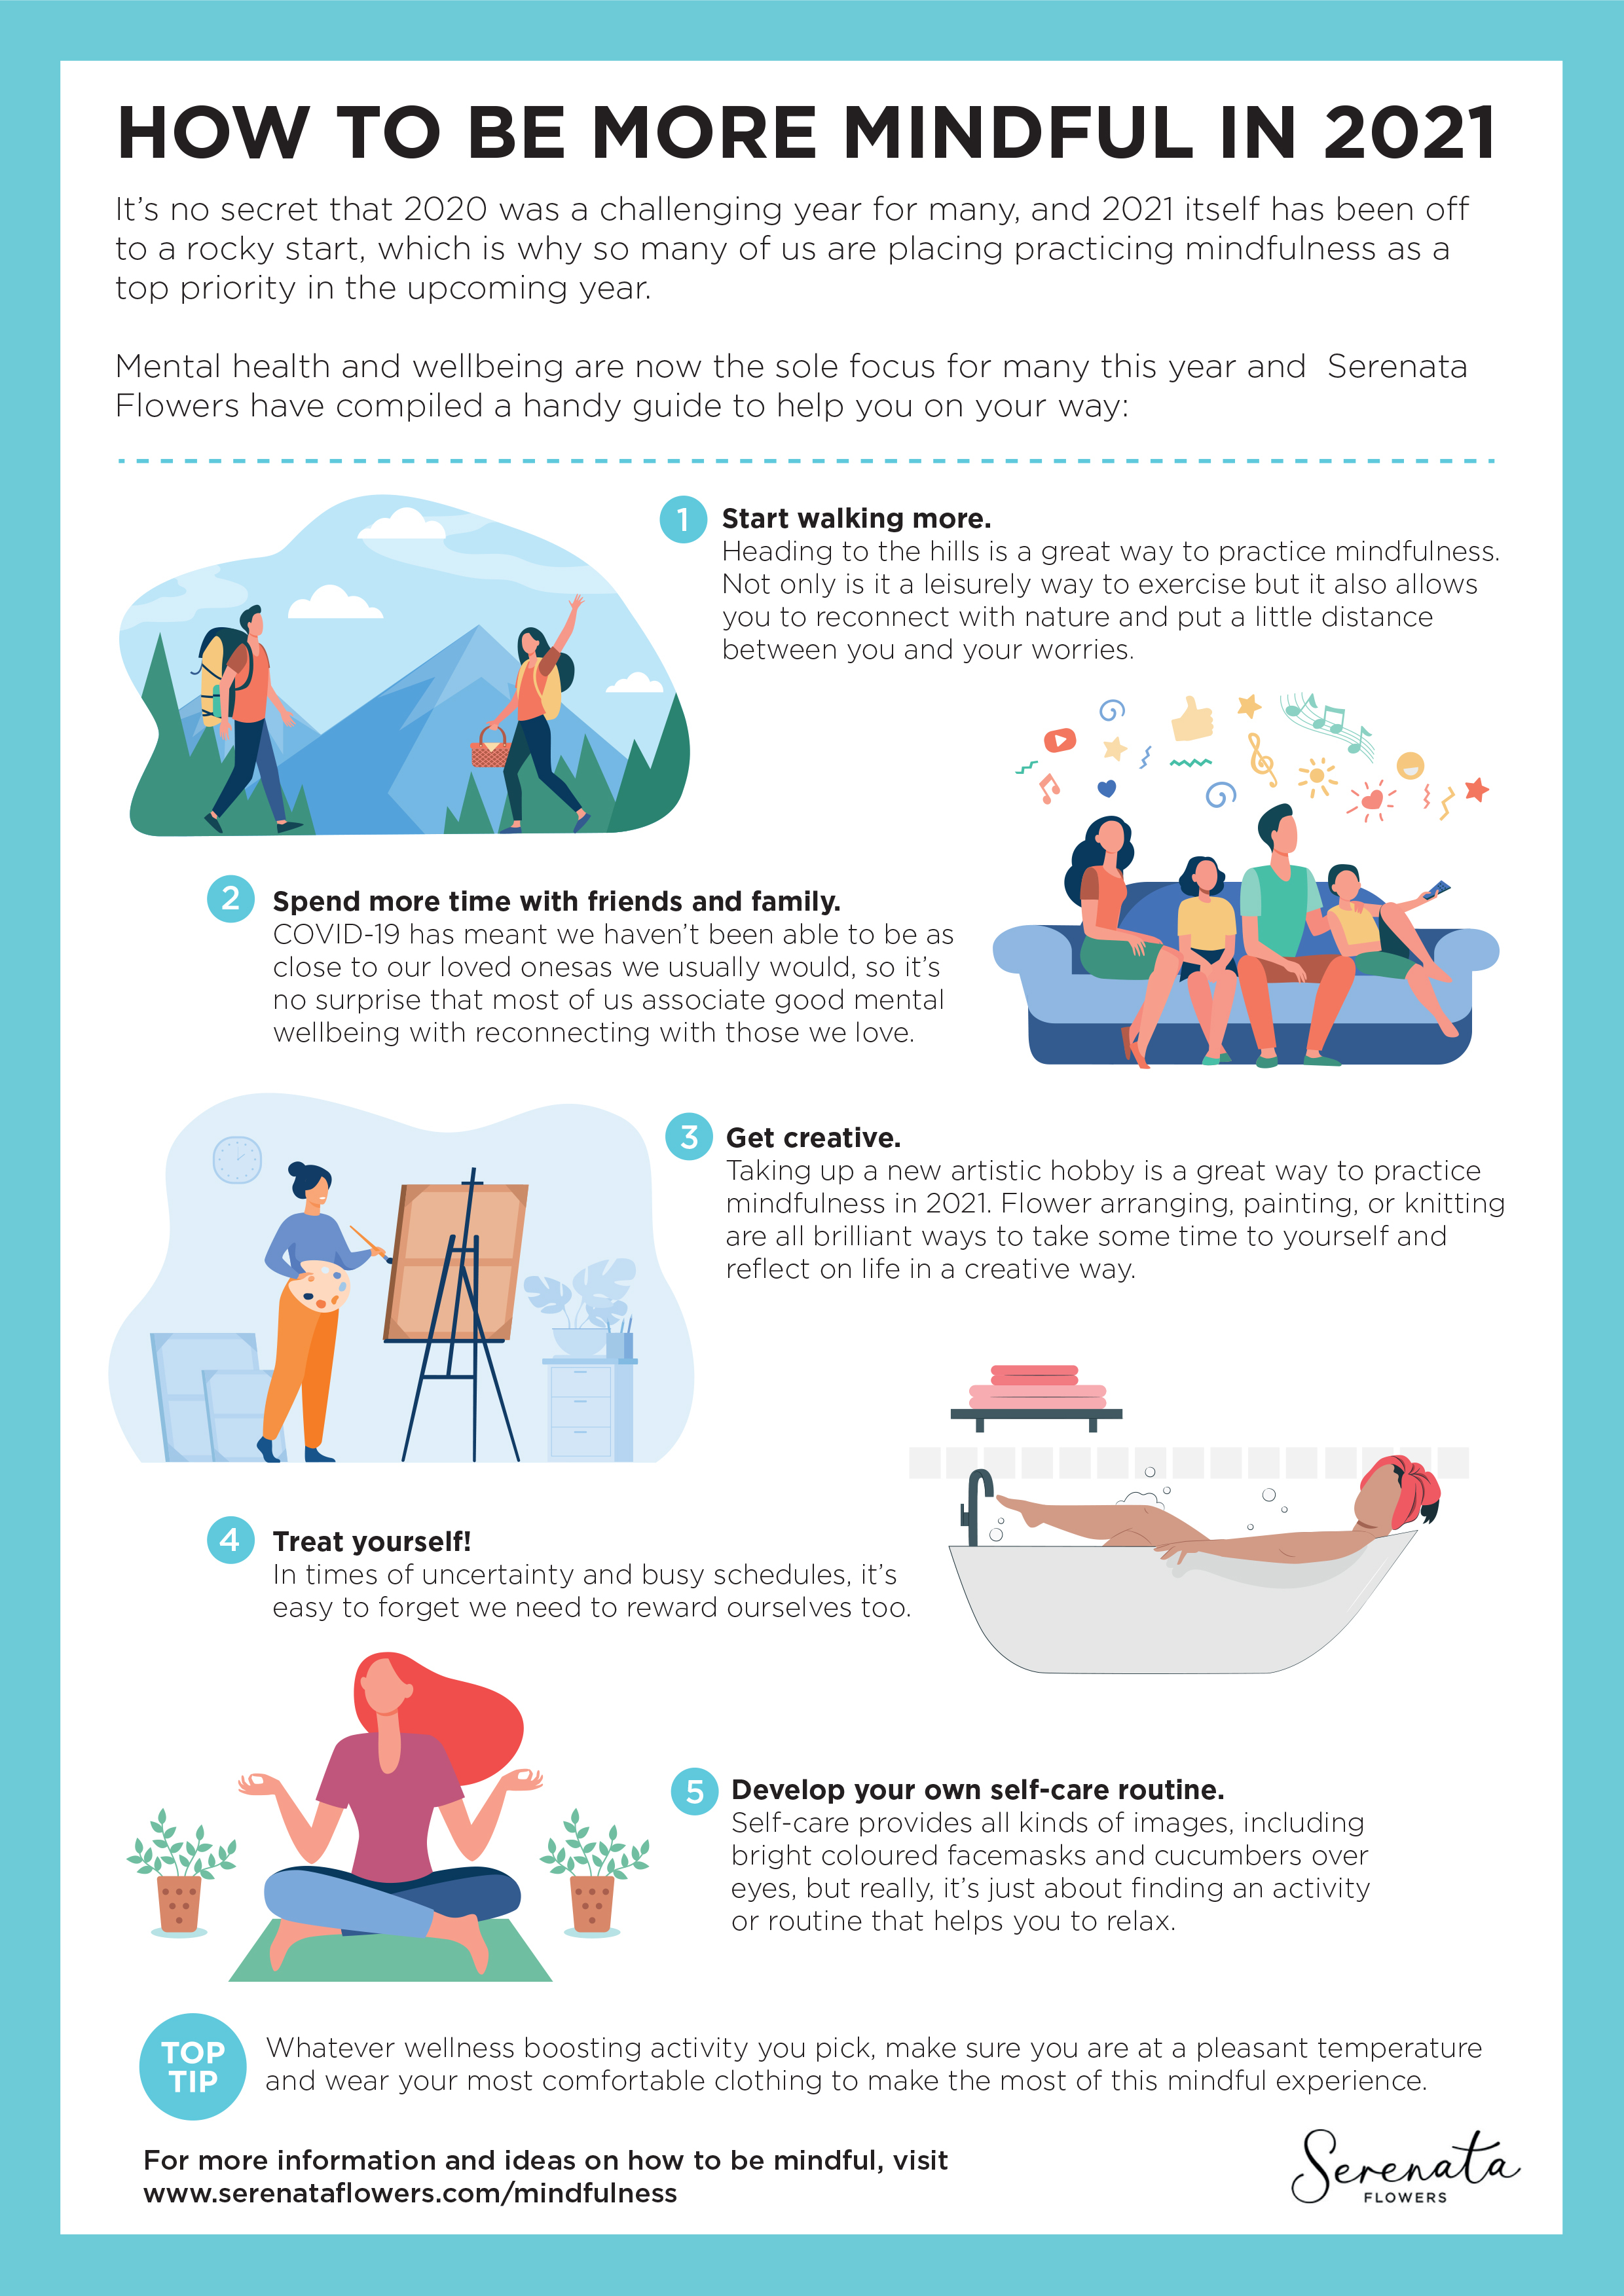 How to Become More Mindful - Serenata Flowers- Infographic